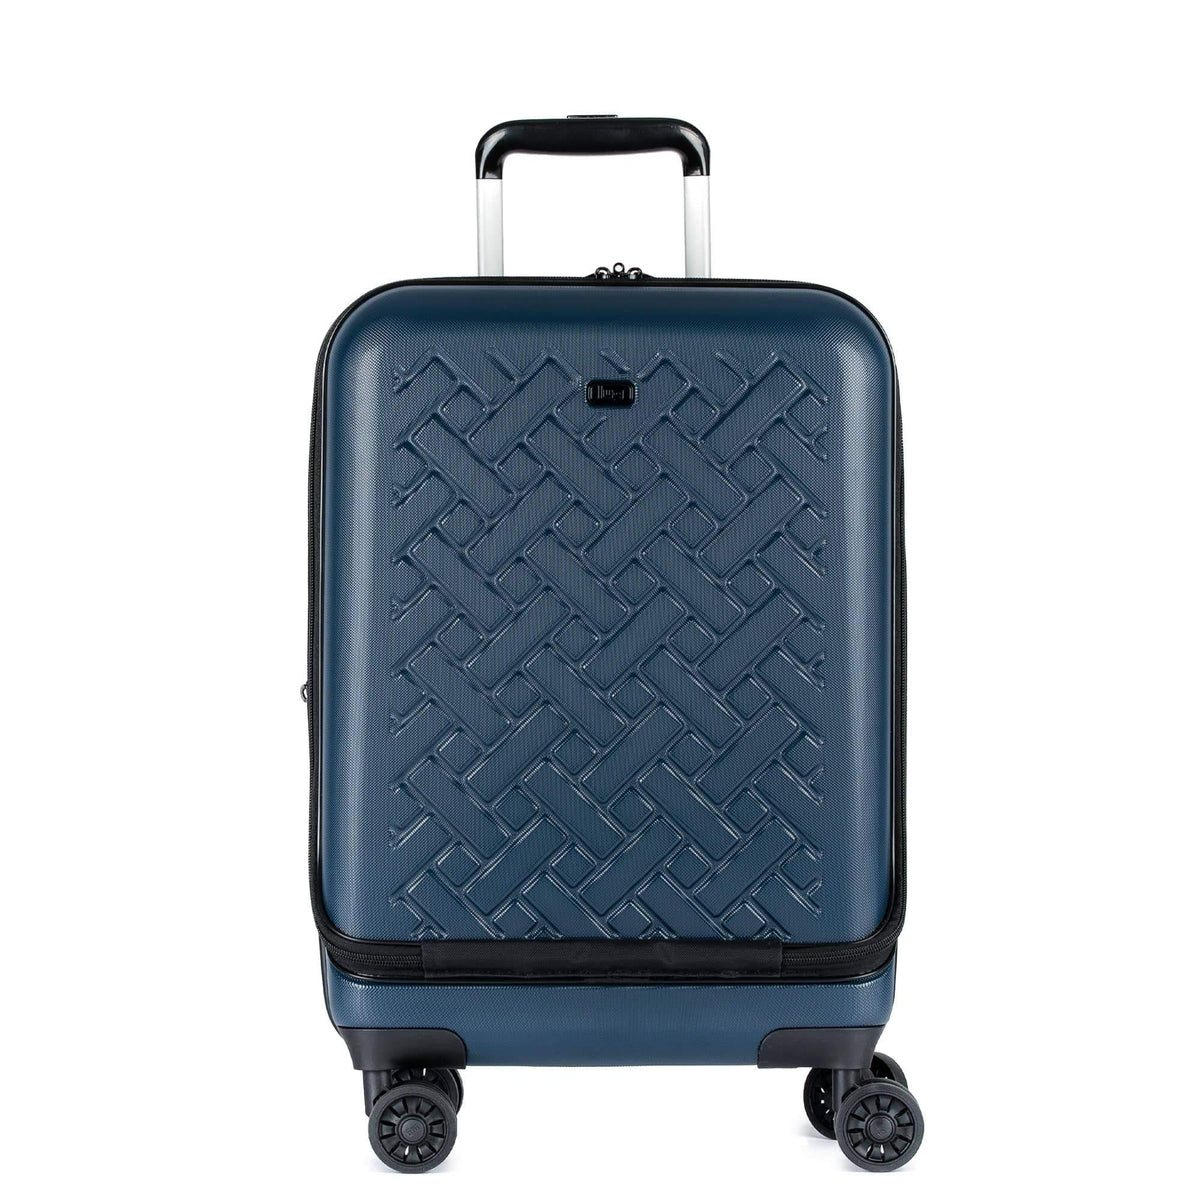 Booster Hardside Luggage